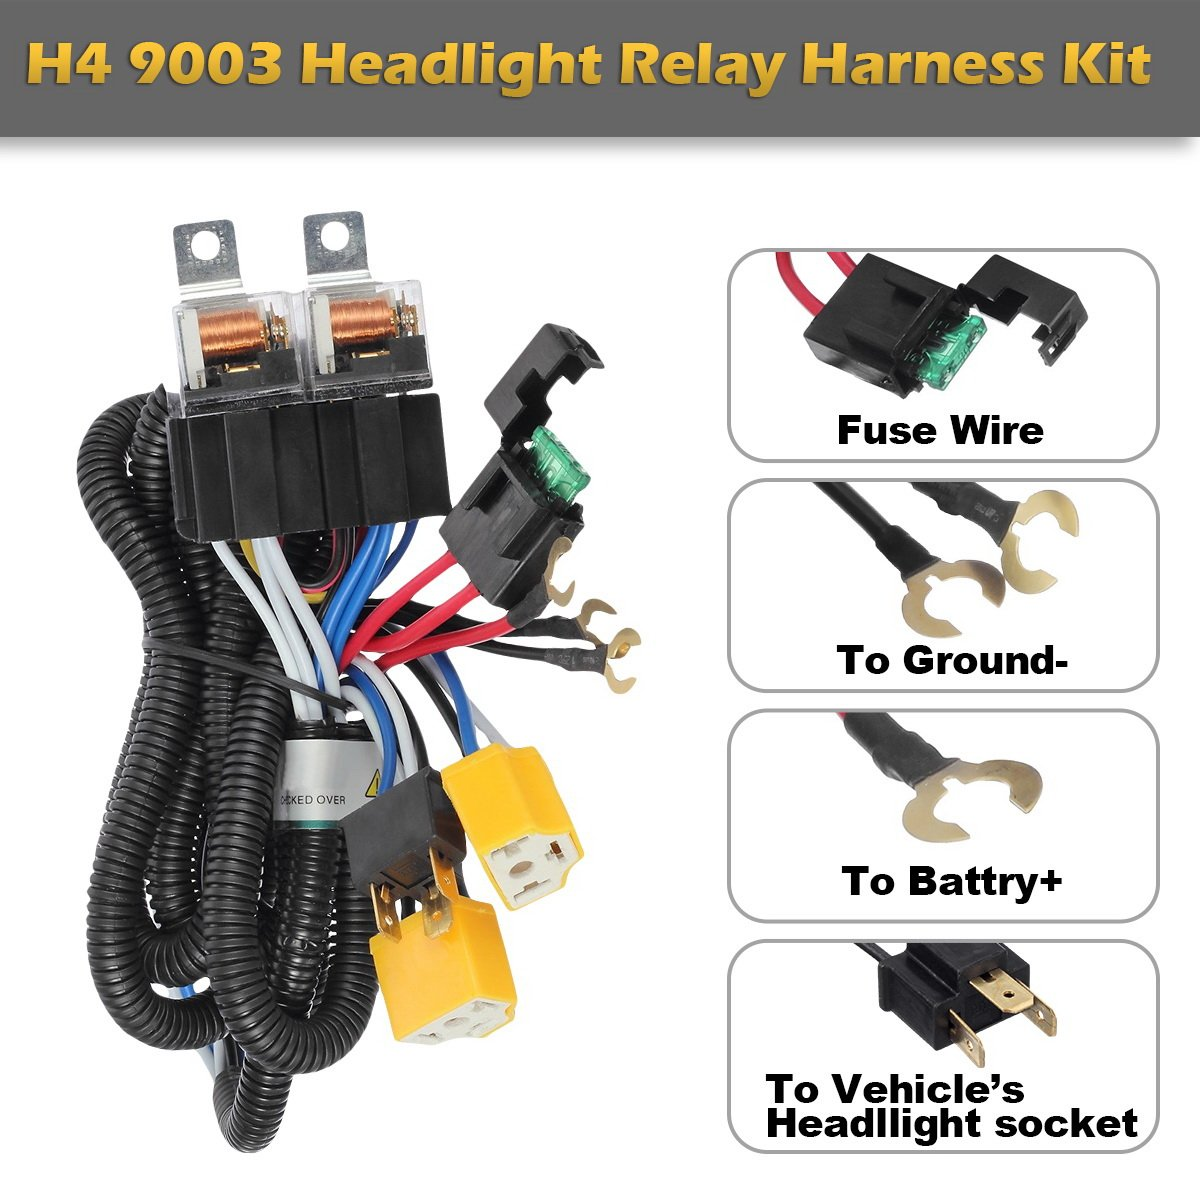 Partsam H4 9003 Headlight Relay Wiring Harness Kit High Switch Low Beam Heat Ceramic Socket Plugs Hid Conversion For Toyota Pickup Tacoma 7x6 5x7